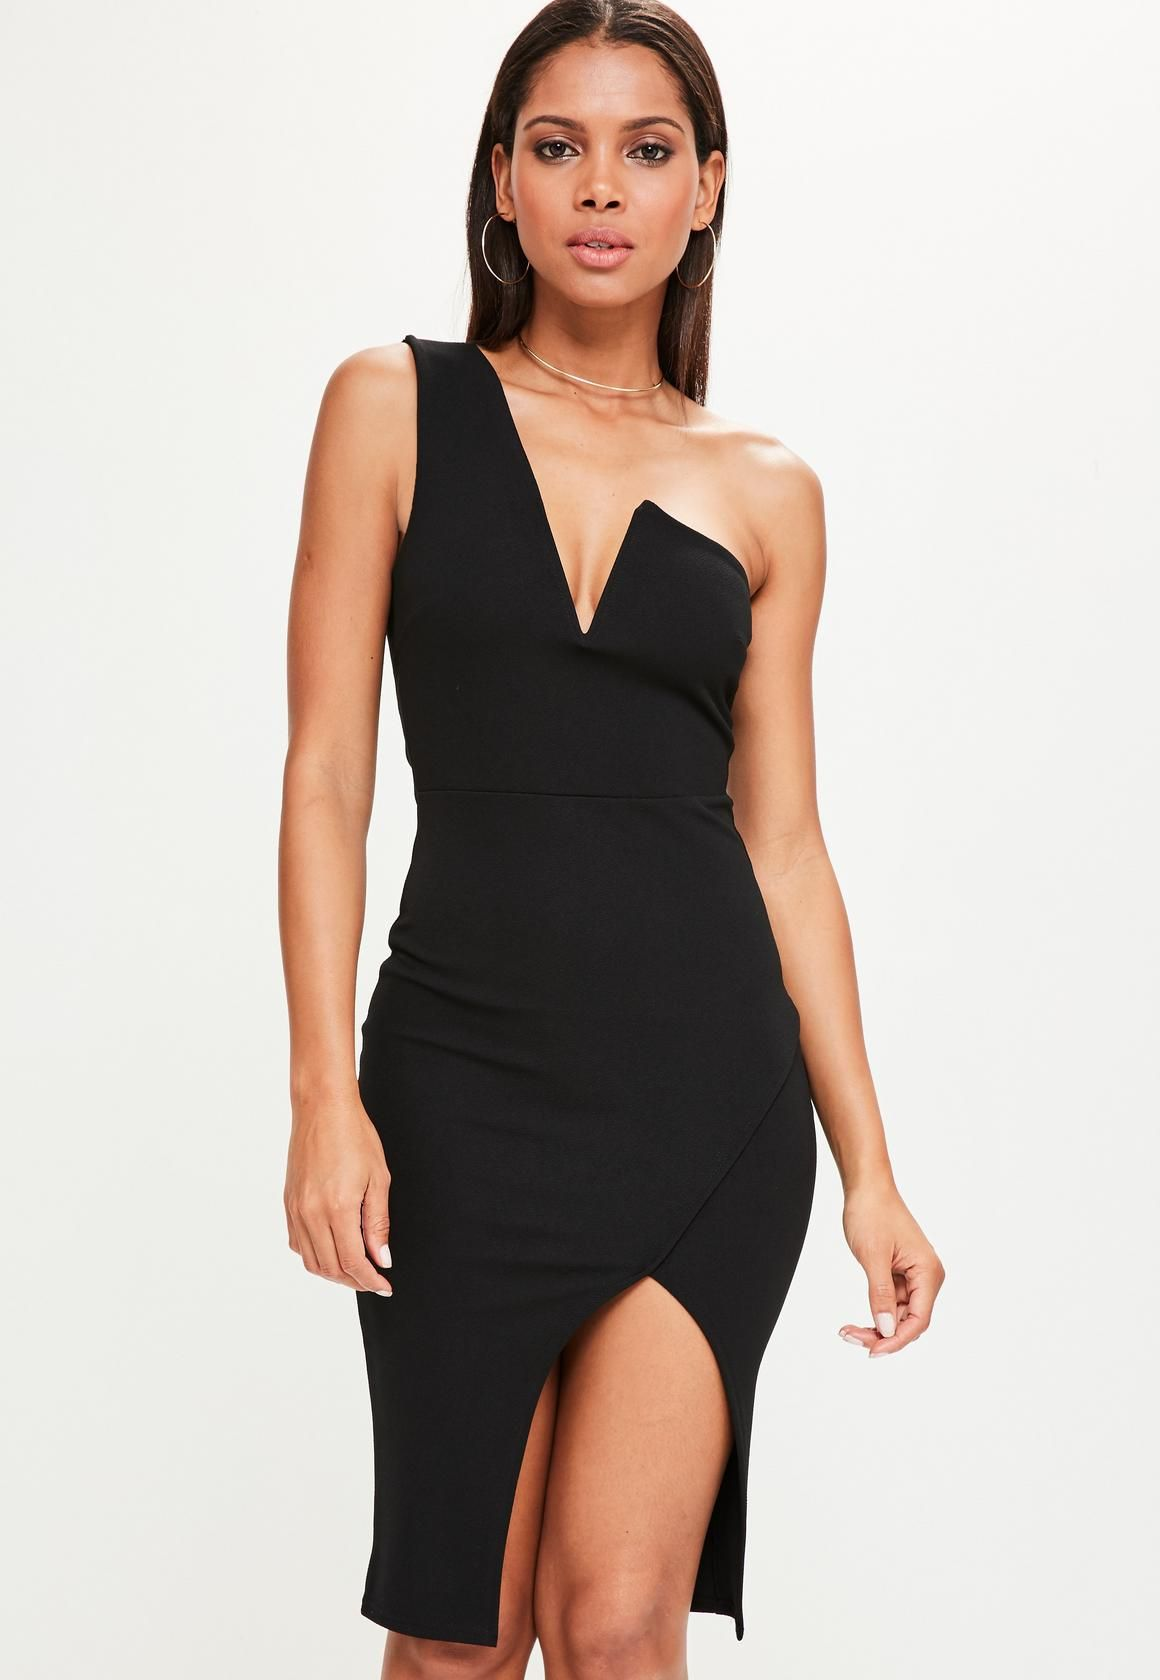 7461930d0d Missguided - Black One Shoulder V Bar Asymmetric Midi Dress ...